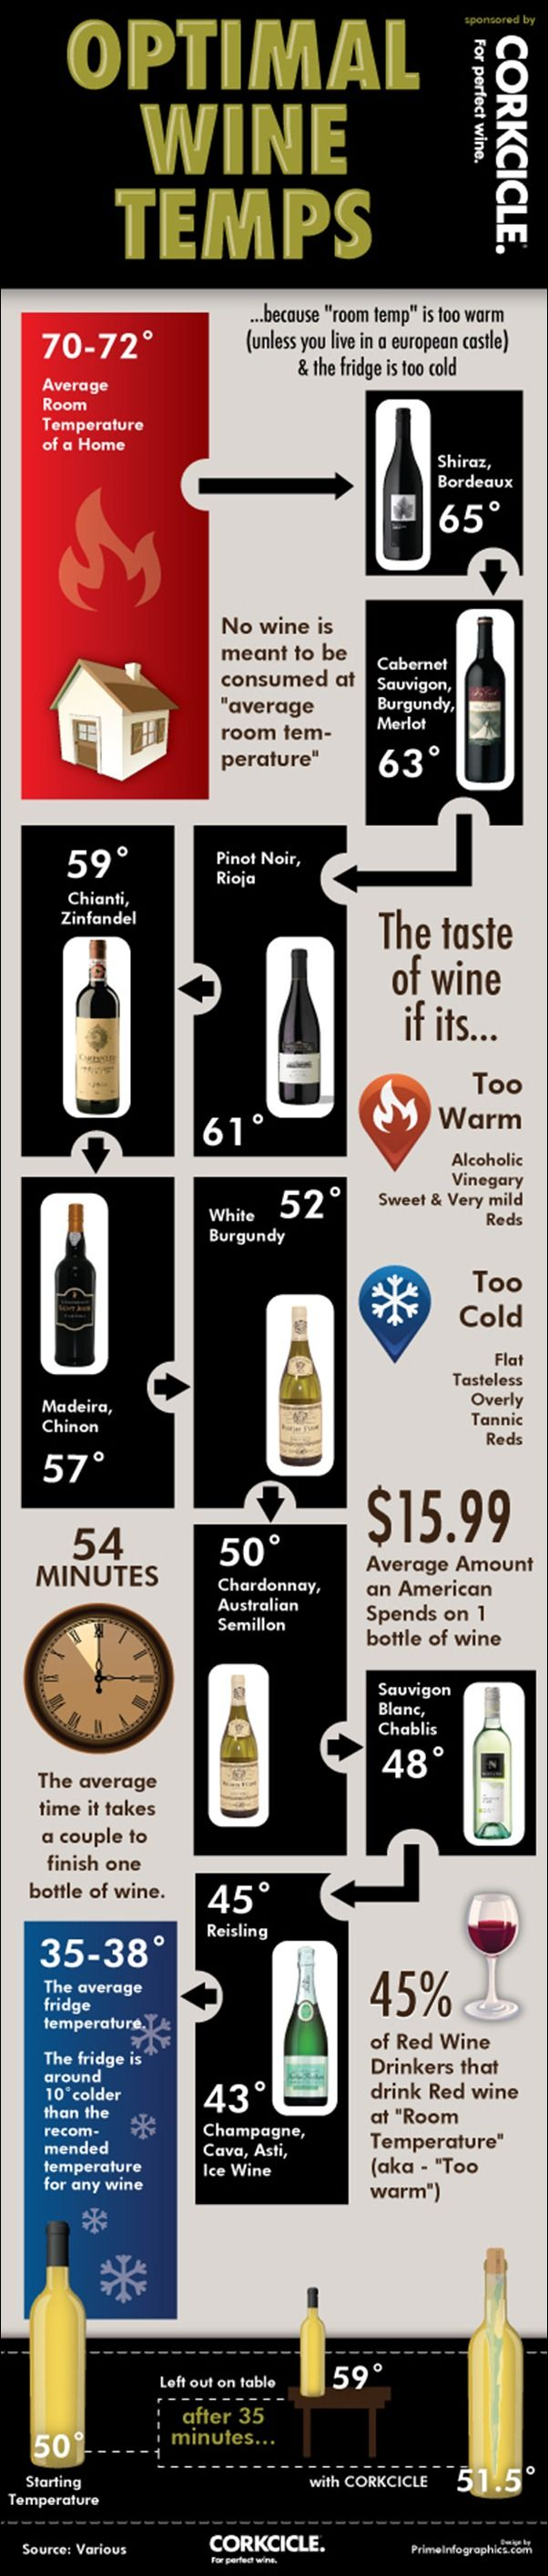 A look at a range of different wines and what temperature they should be served at.